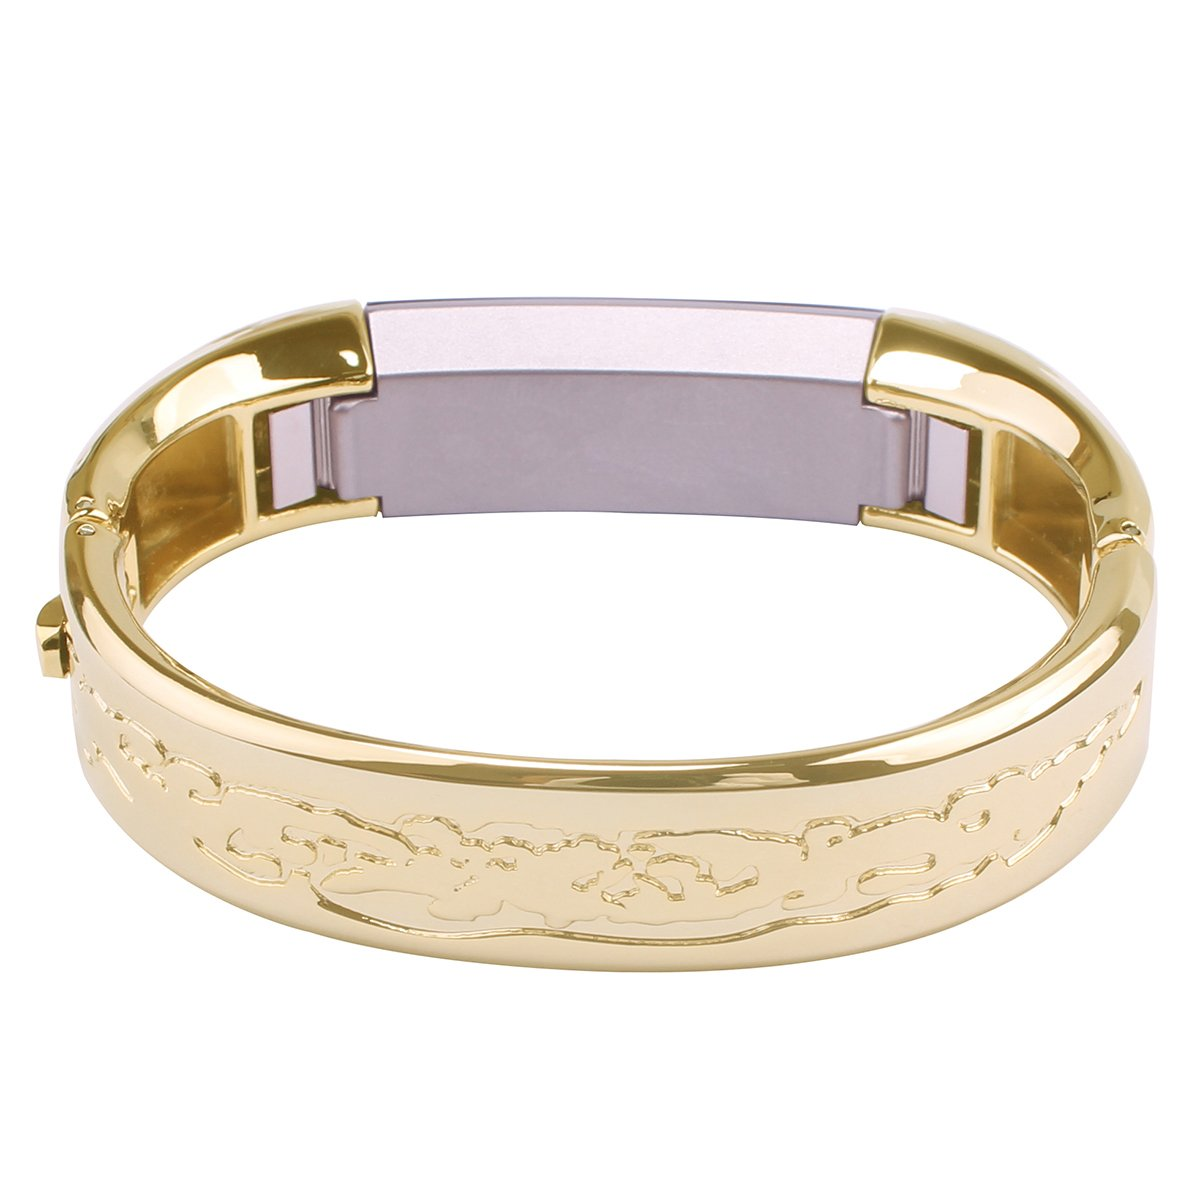 Stainless Steel Watch Band for Fitbit Alta HR Band Solid Bracelet Replacement Wristband Strap Gold